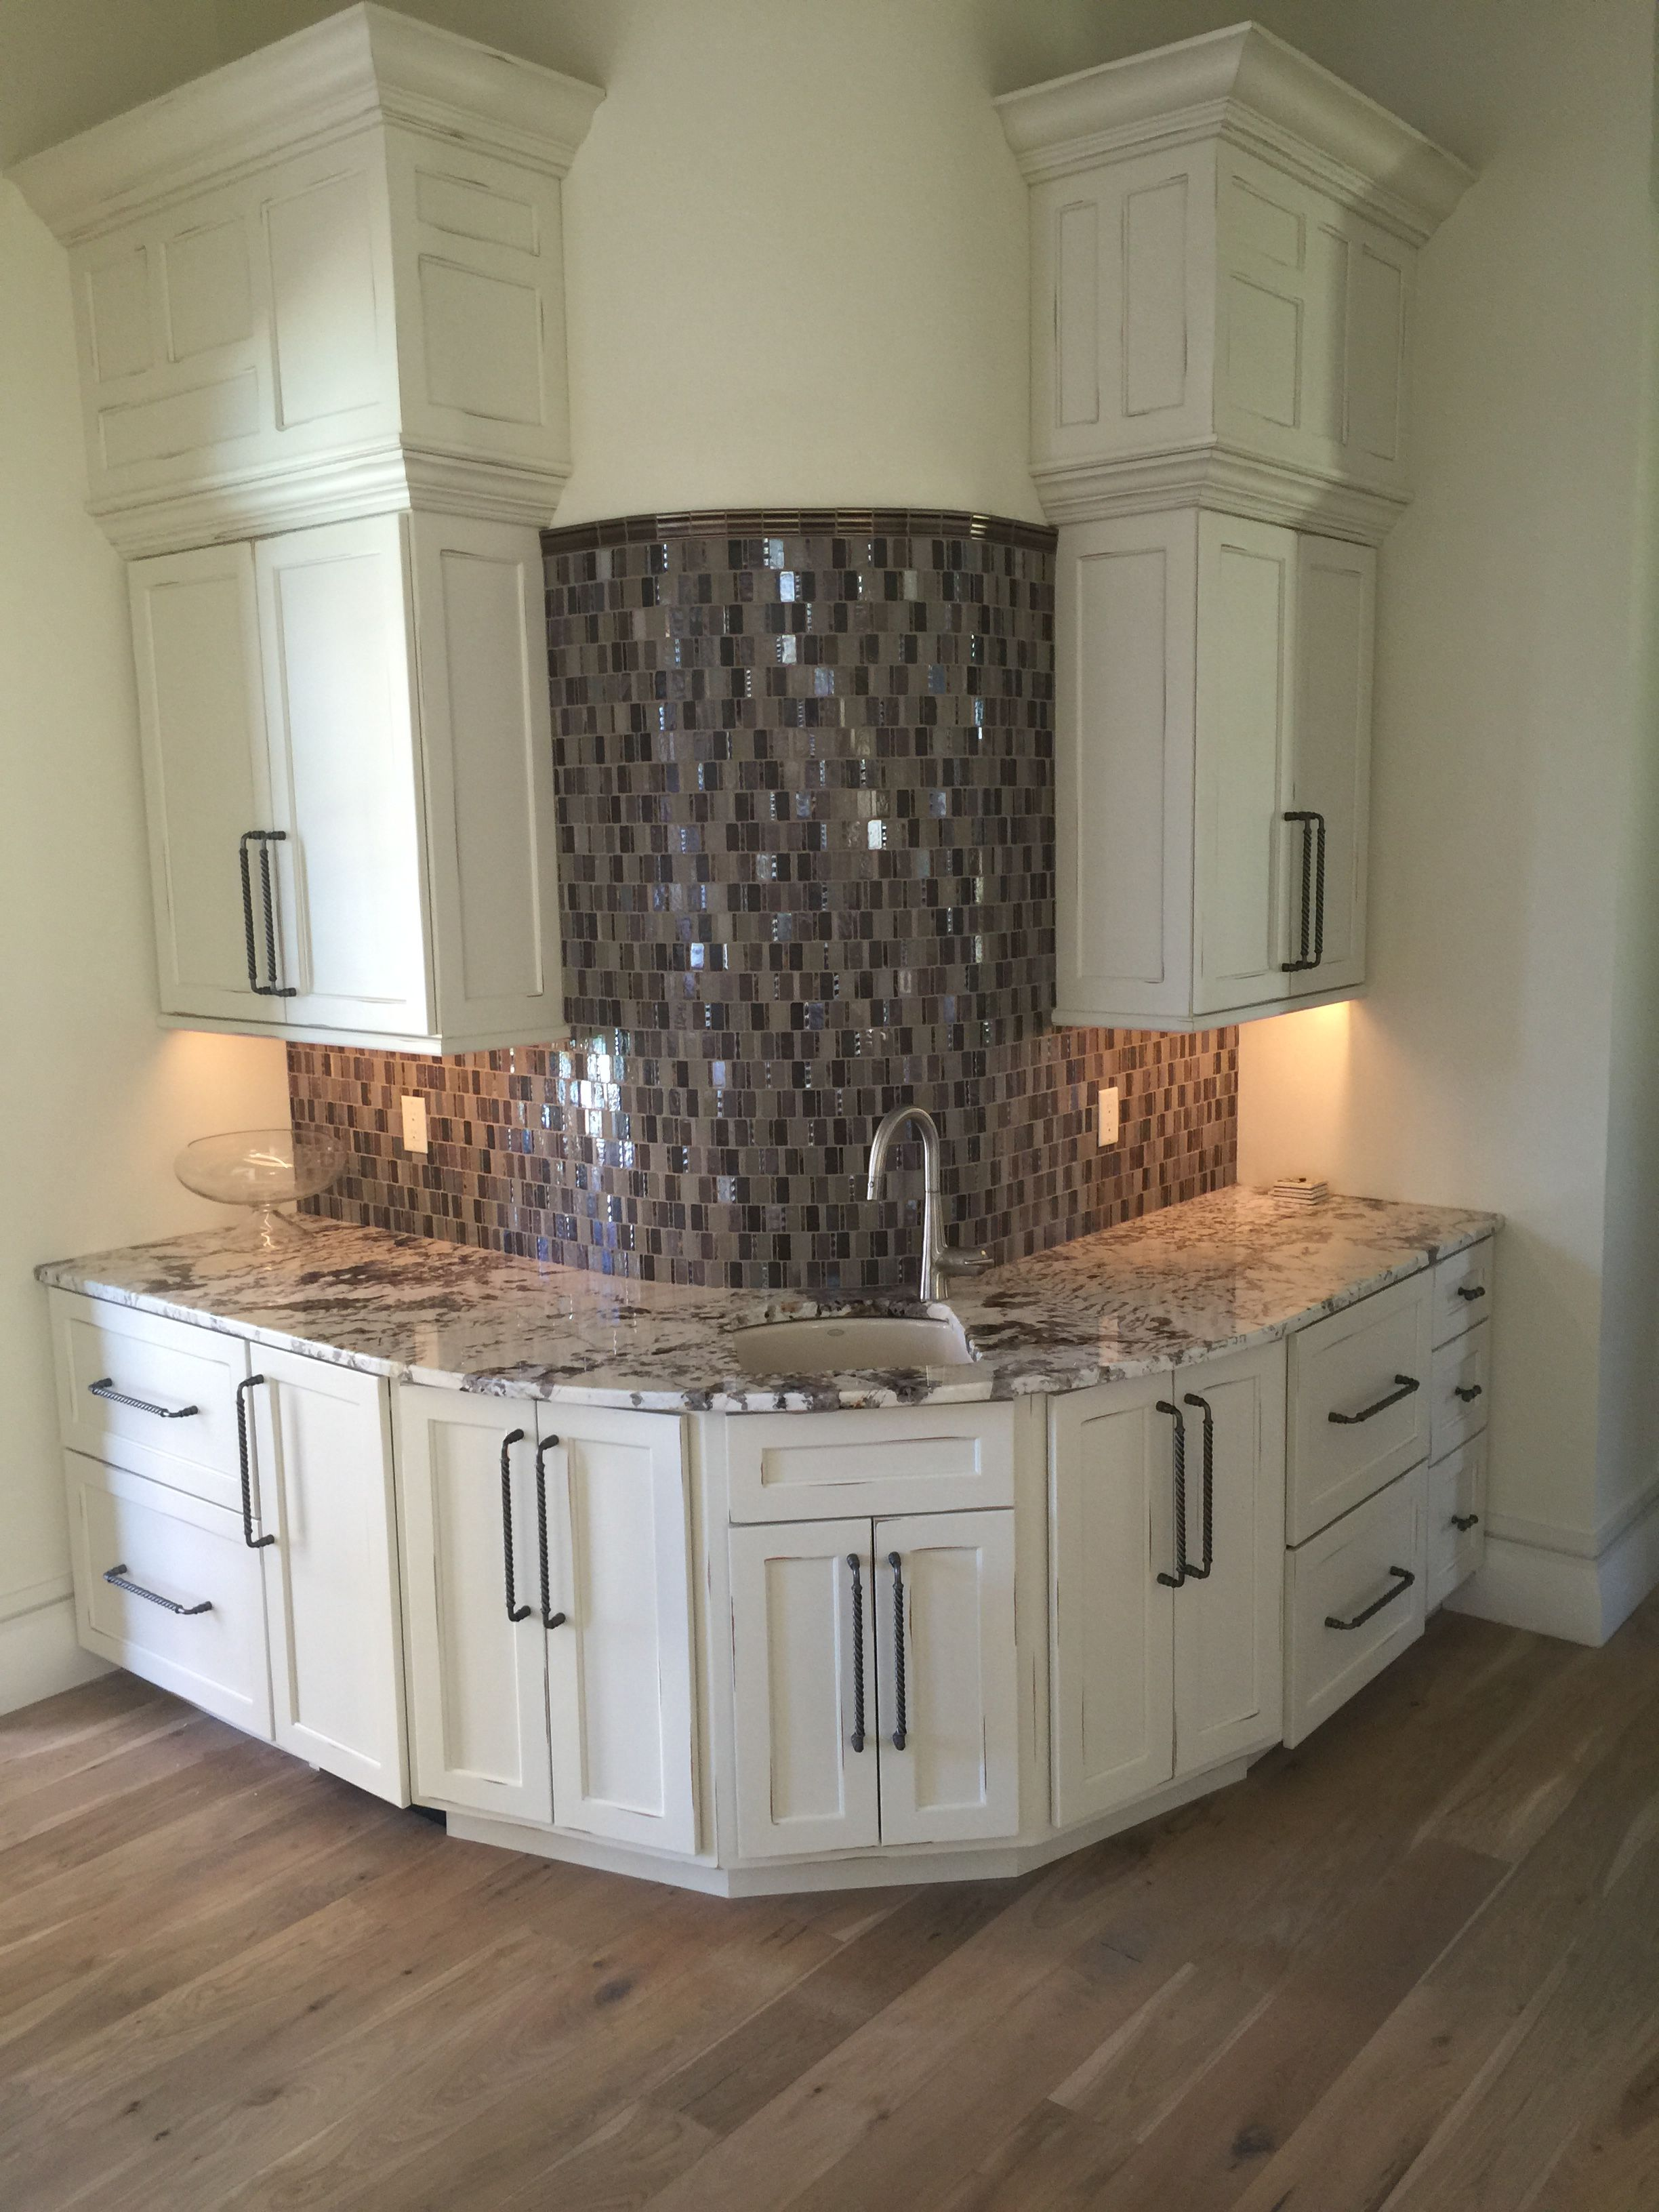 Kitchen island with vegetable sink - Grohe Corner Prep Sink Faucet With Two Double Drawer Fisher Paykel Dishwashers And A Sub Zero Ice Maker With Custom Cabinet Facings